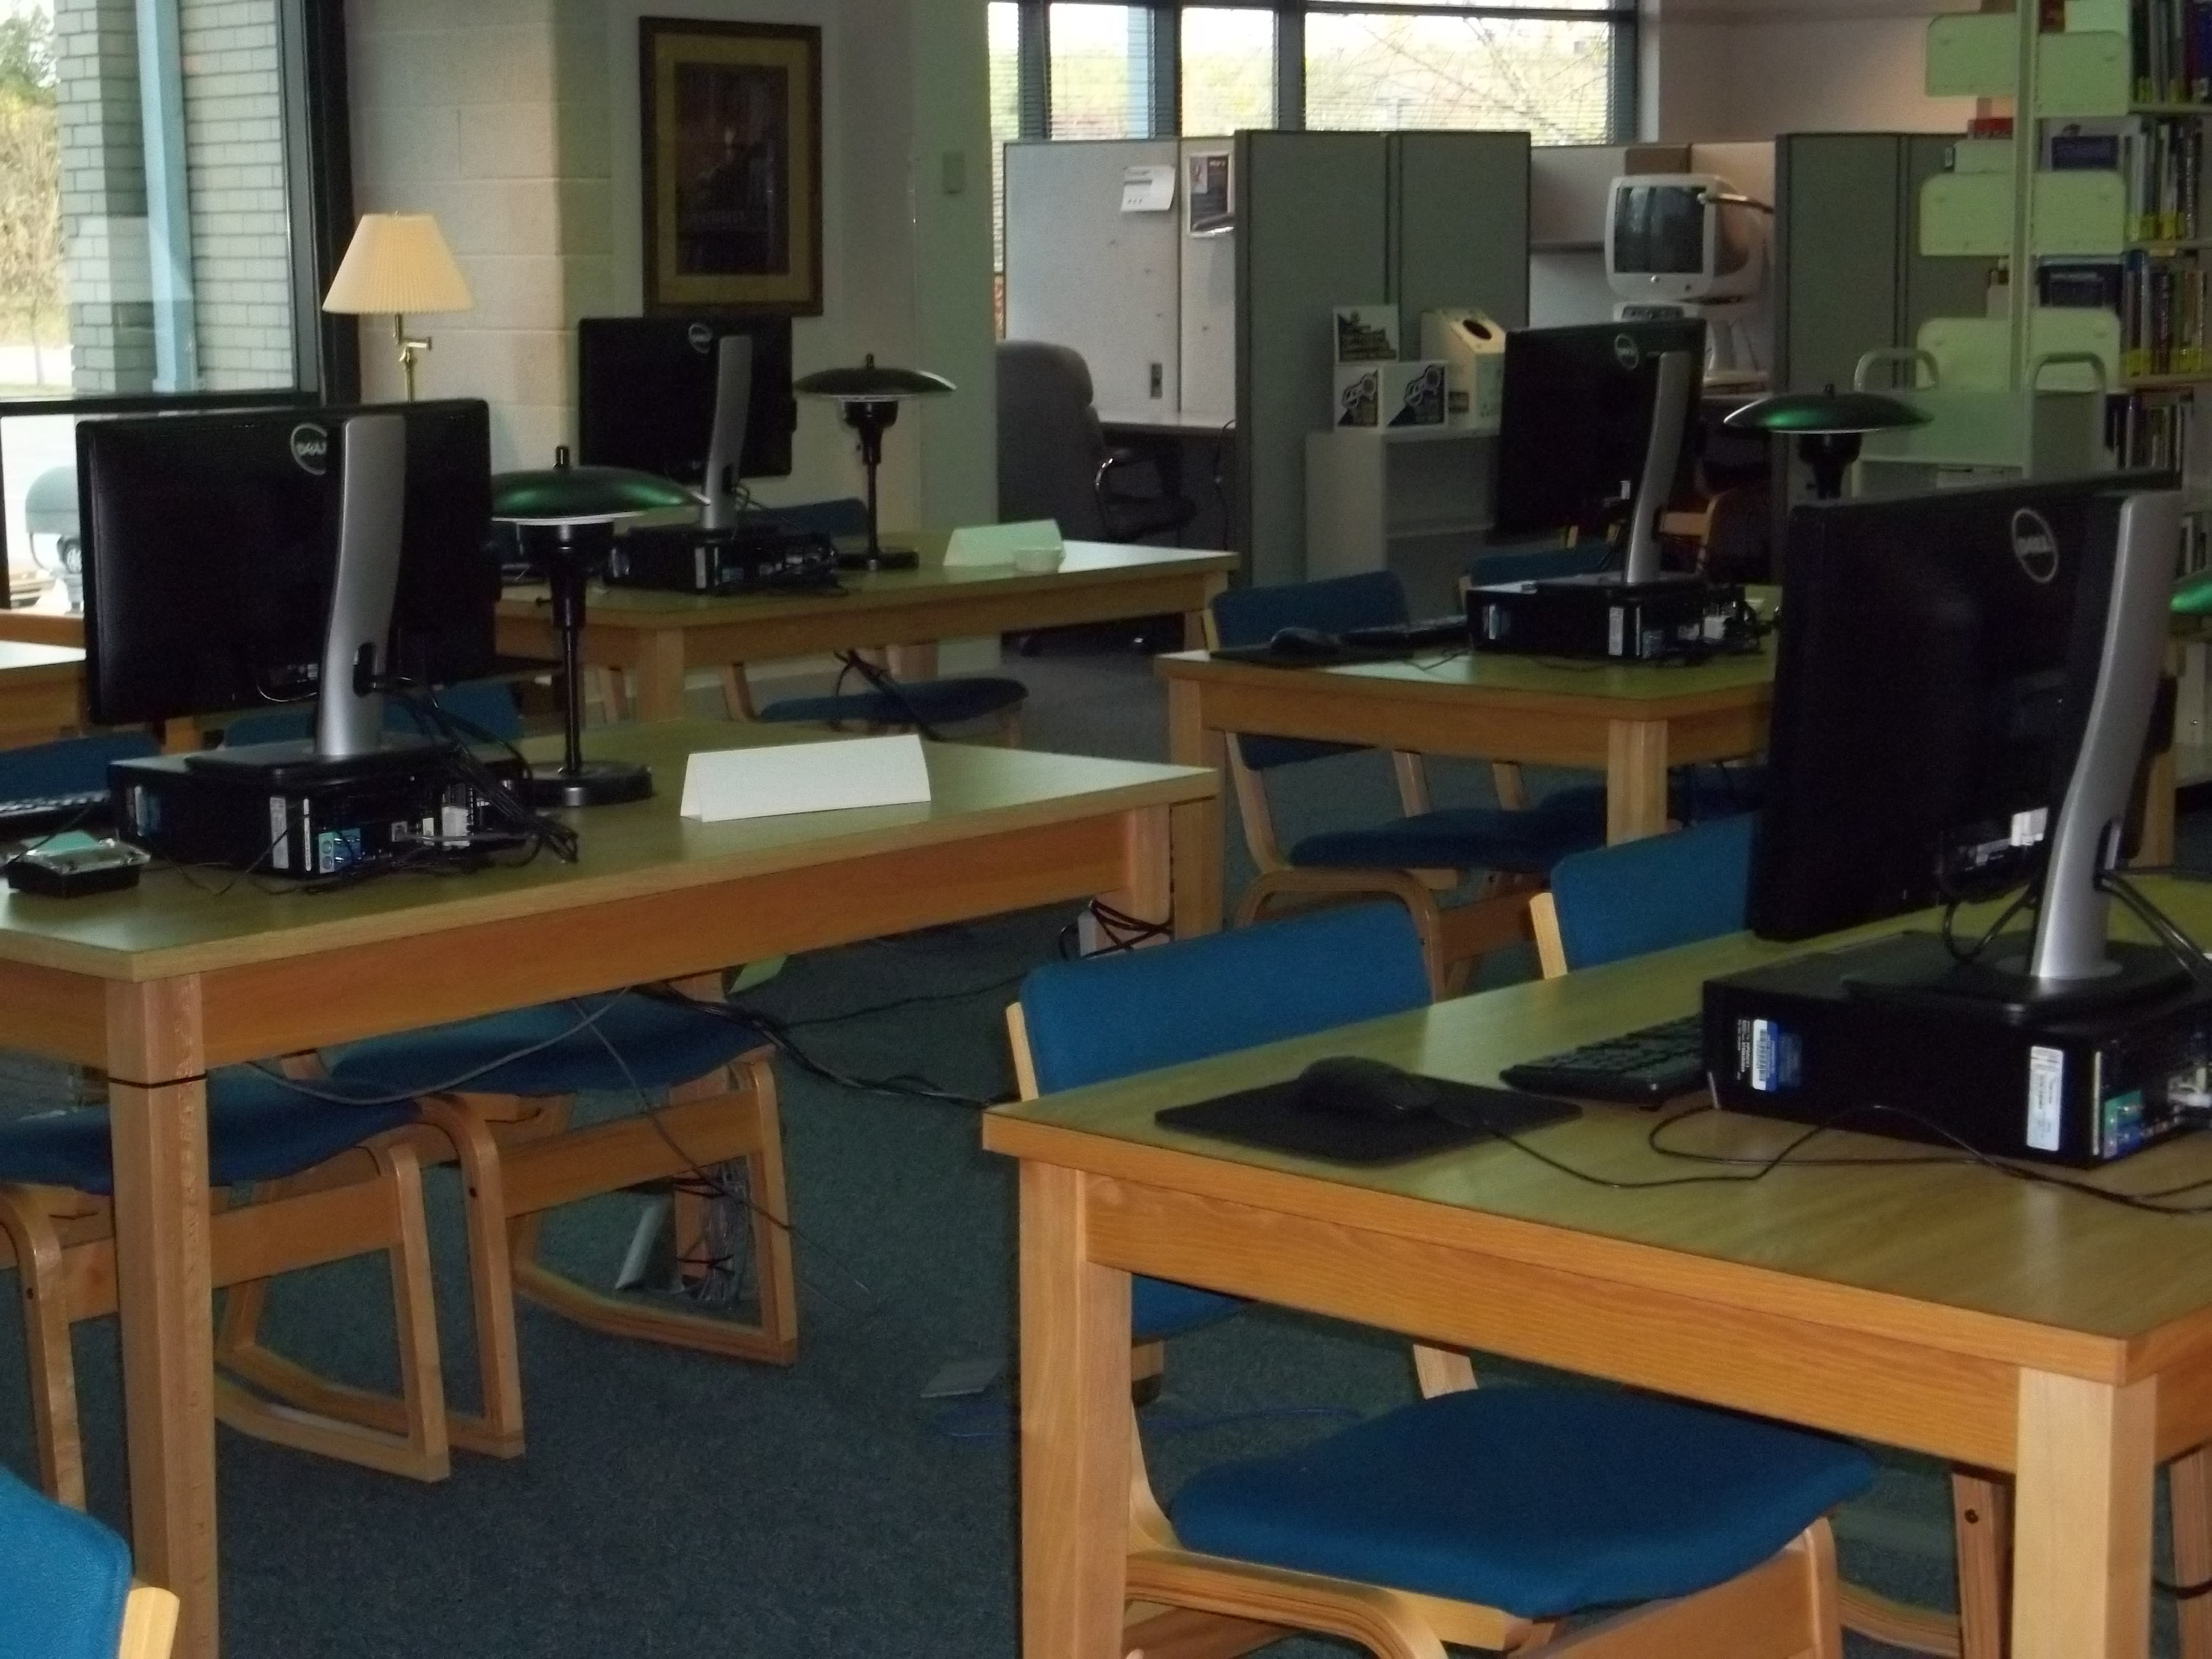 Stafford Library computers